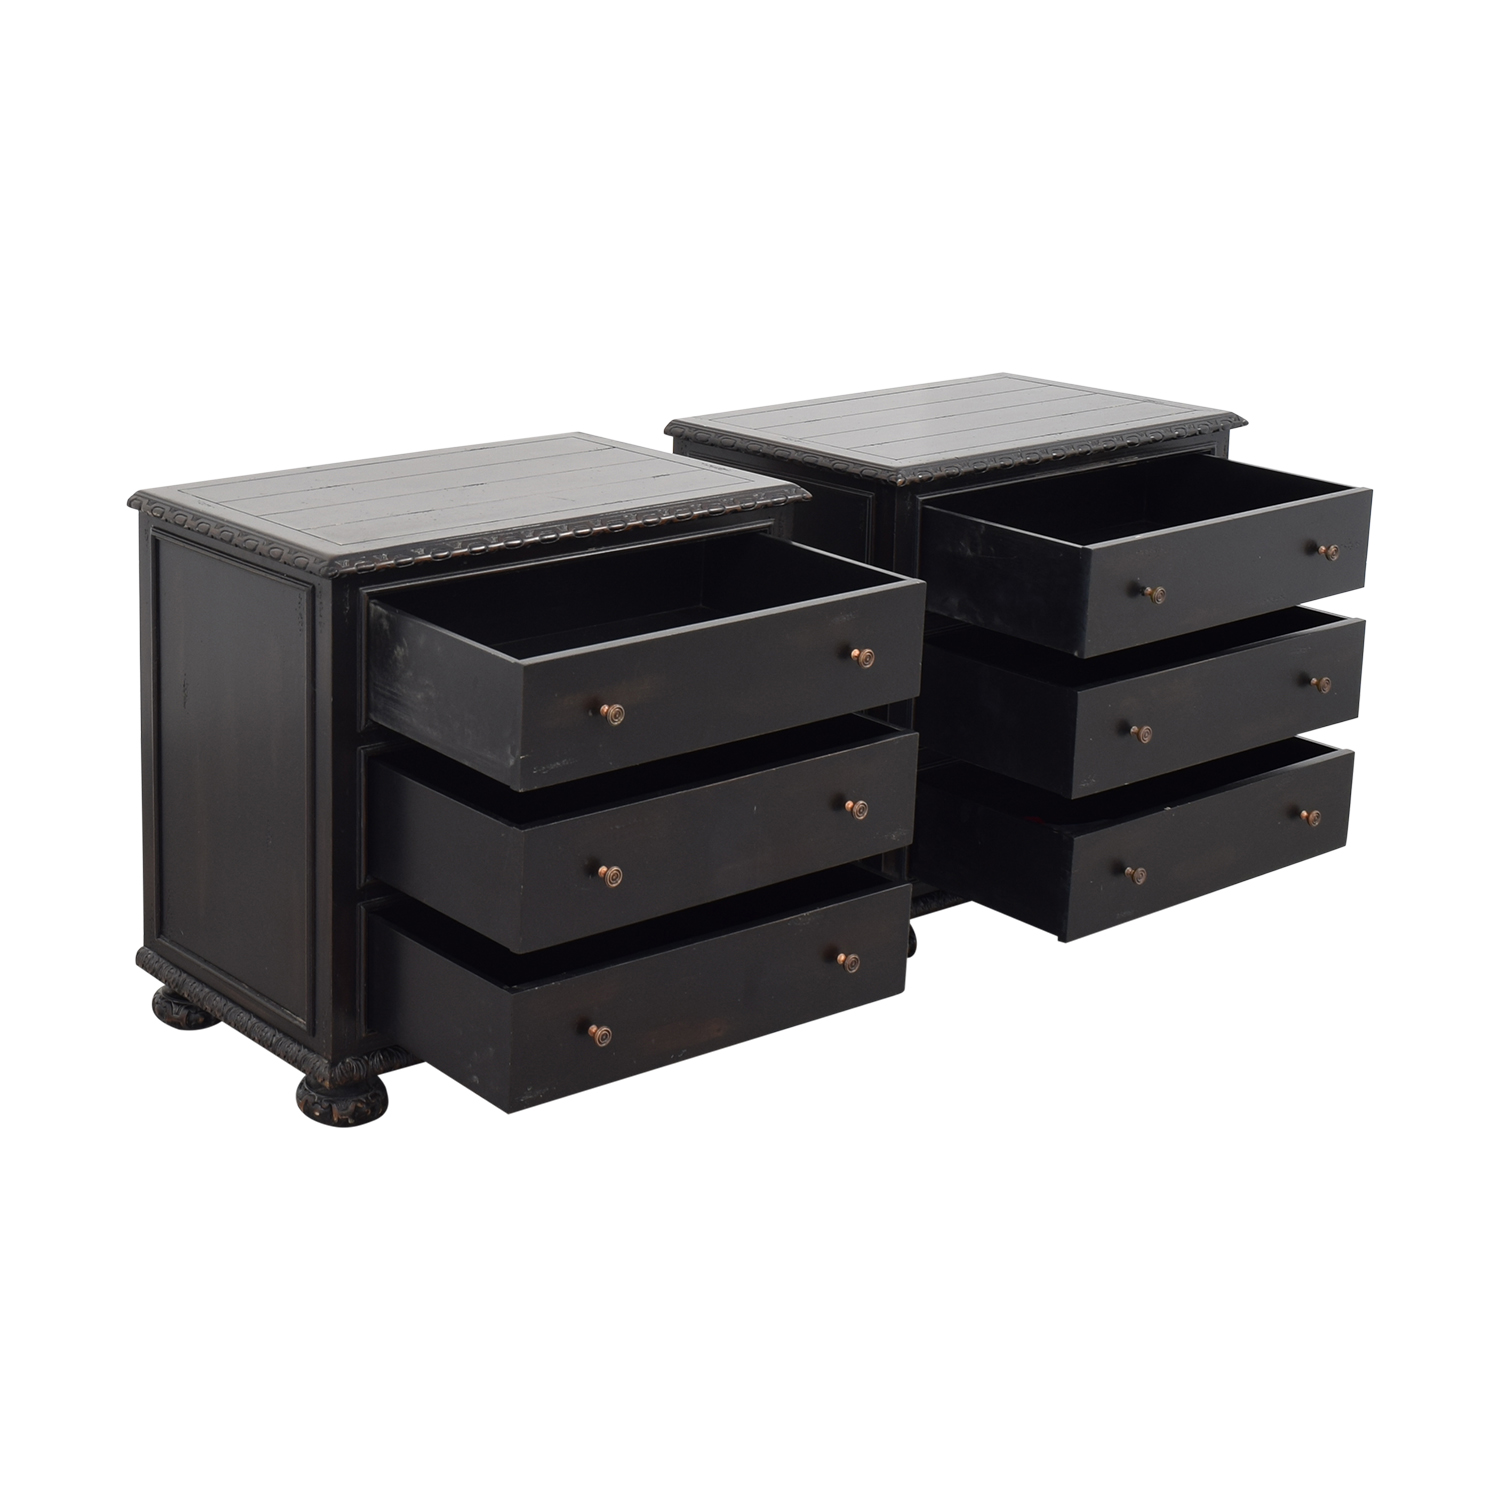 Restoration Hardware Restoration Hardware French Empire Closed Nightstands ct